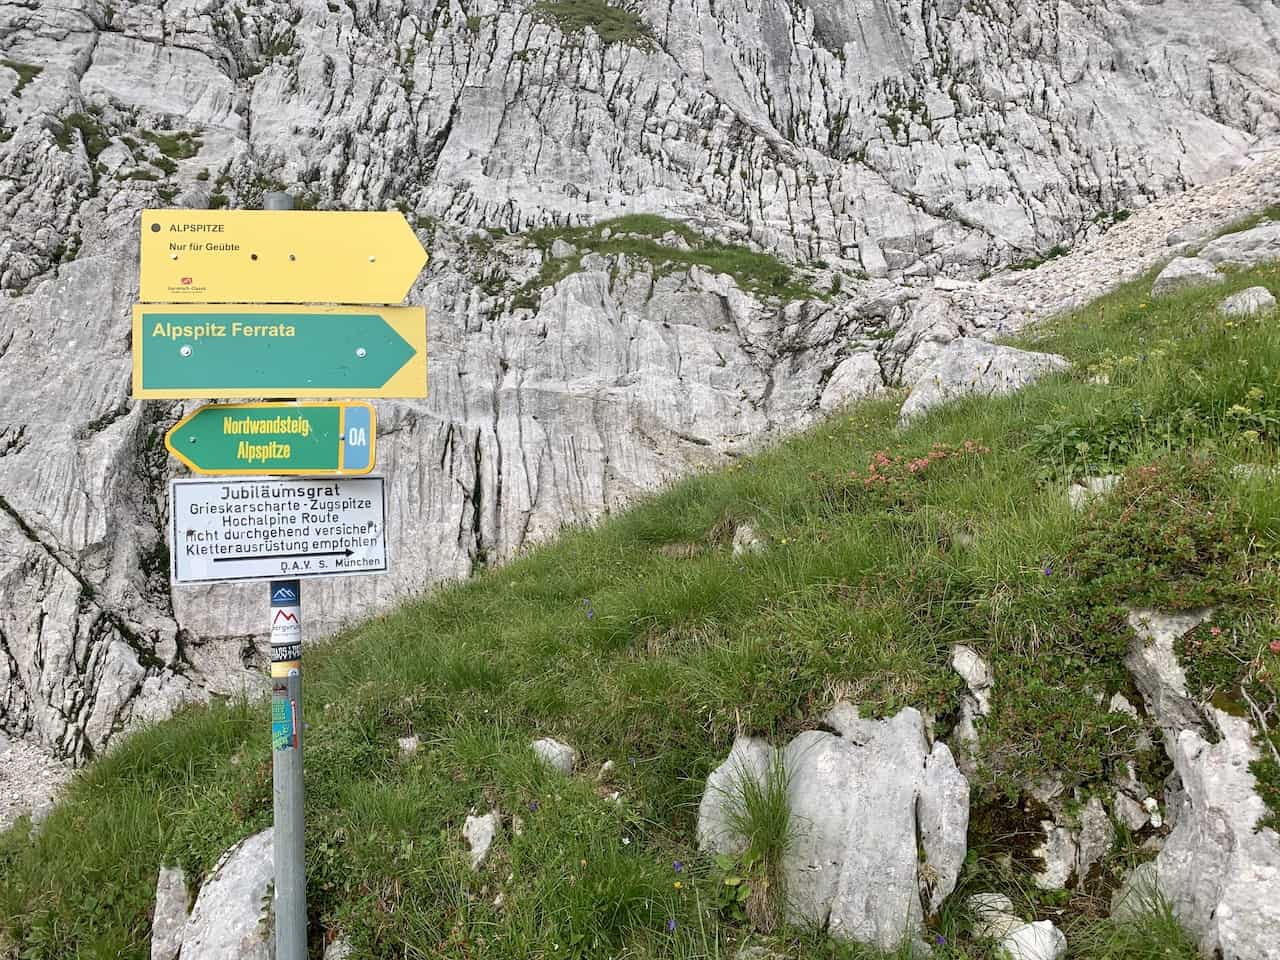 Alpspitze Ferrata Sign